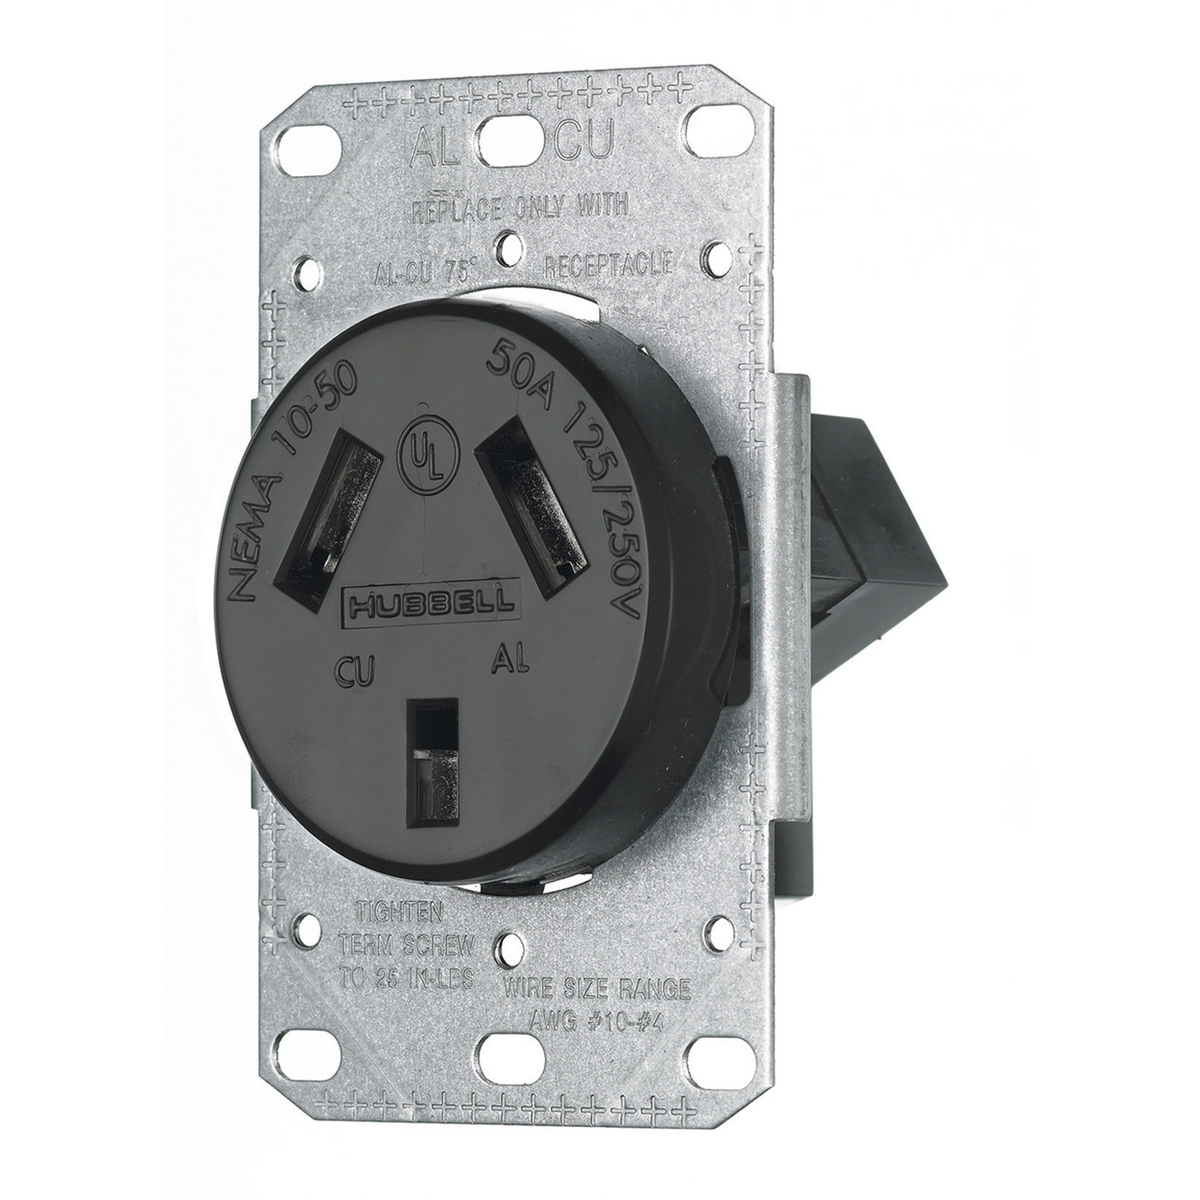 Rr350f Brand Wiring Device Kellems Hubbell Receptacles Gfci Diagram By